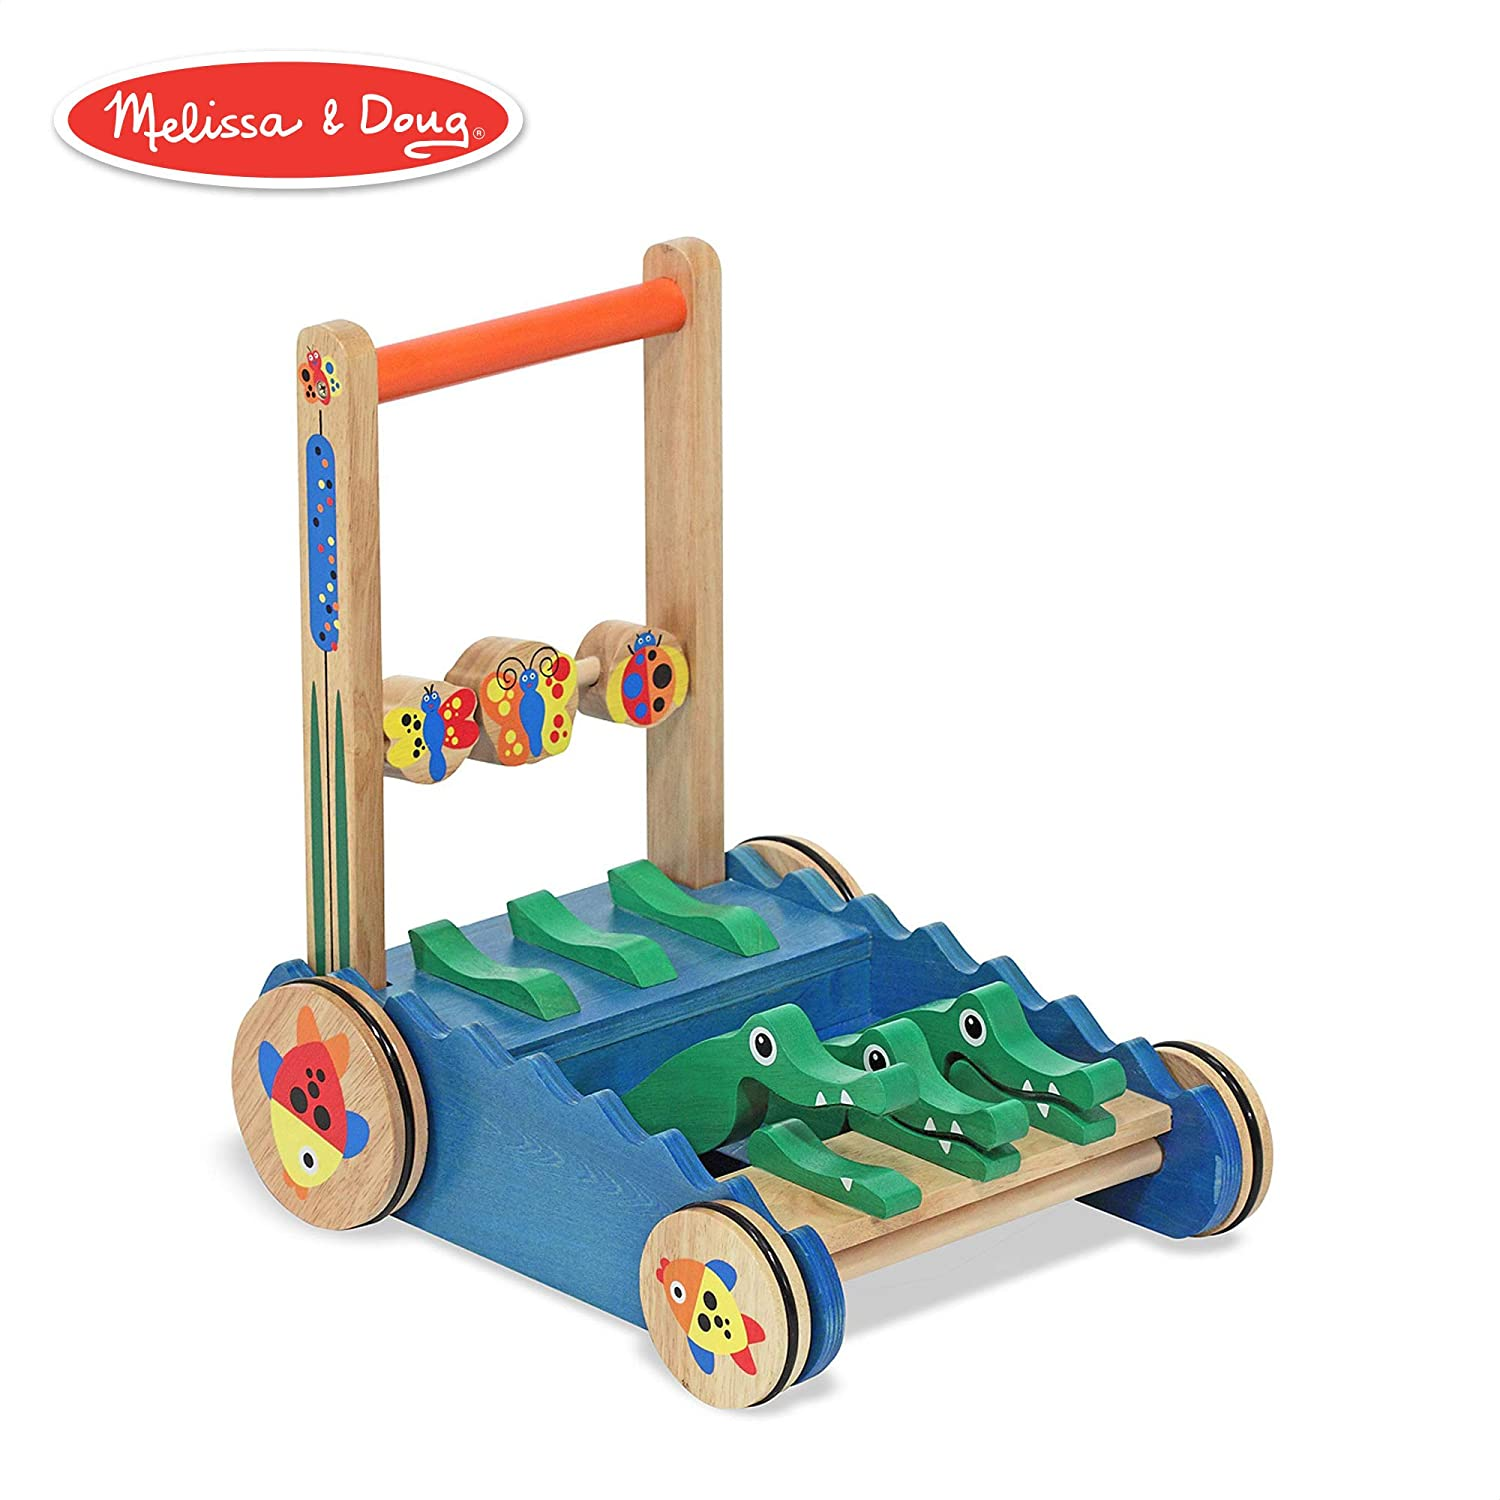 Melissa & Doug Chomp & Clack Alligator Push Toy, Wooden Activity Walker